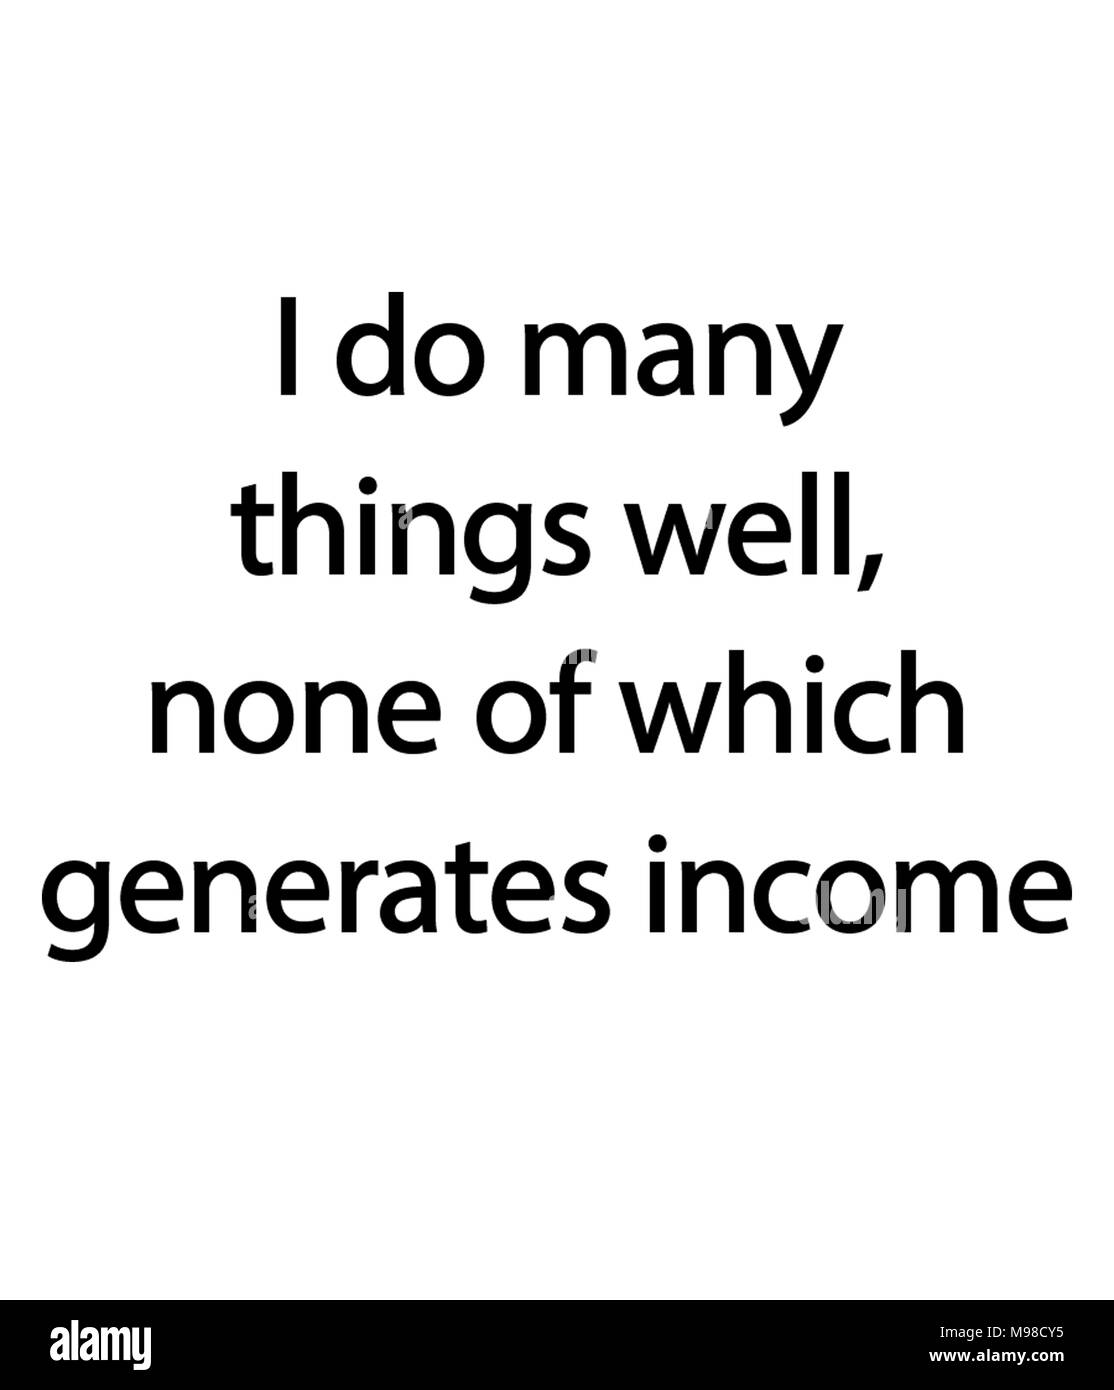 I do many things well, none of which generates income - Stock Image